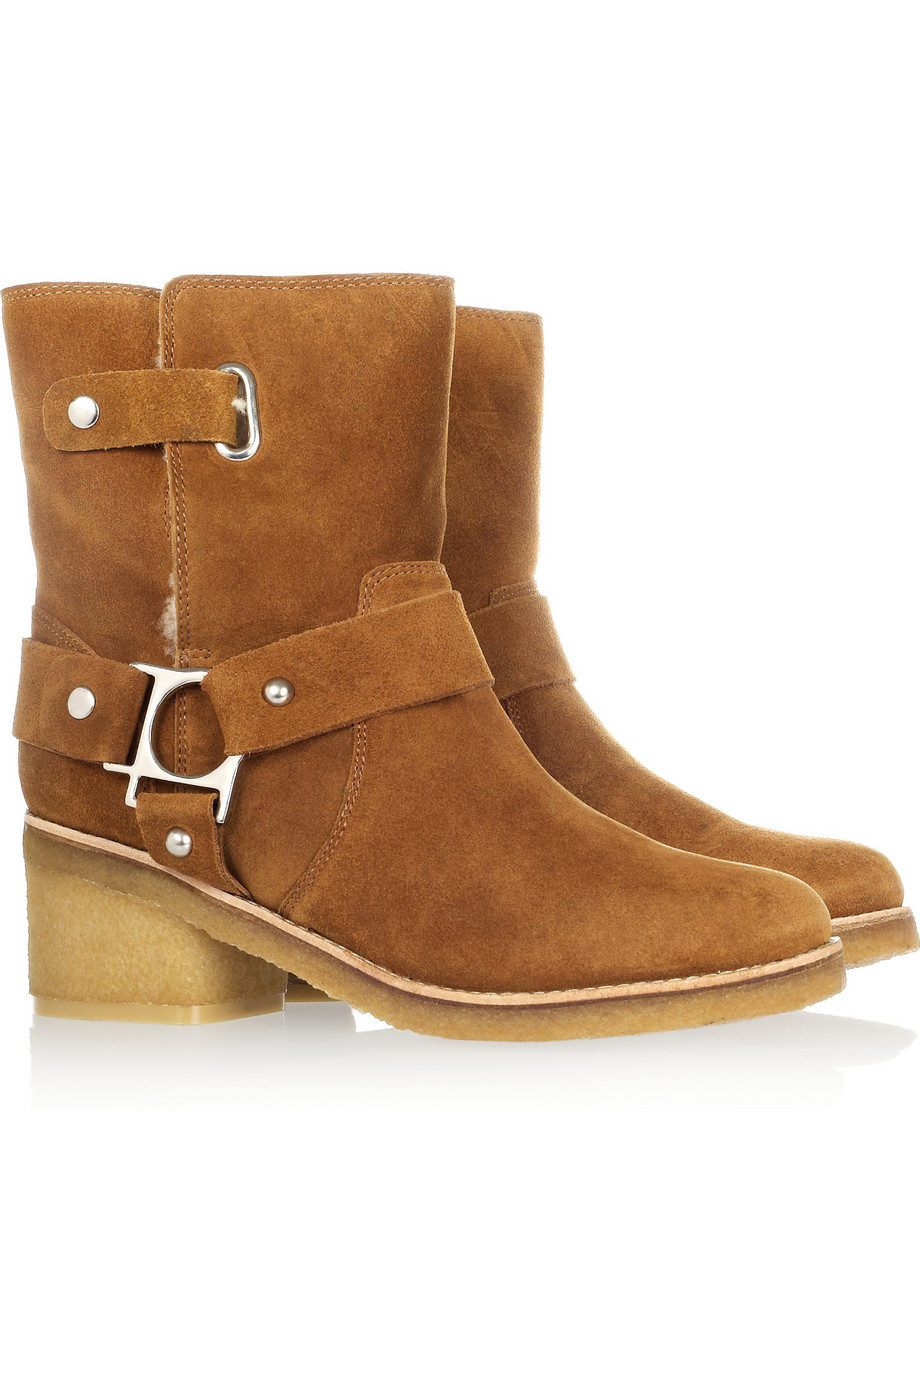 Belle by Sigerson Morrison 50MM SUEDE ANKLE BOOTS f0Quy